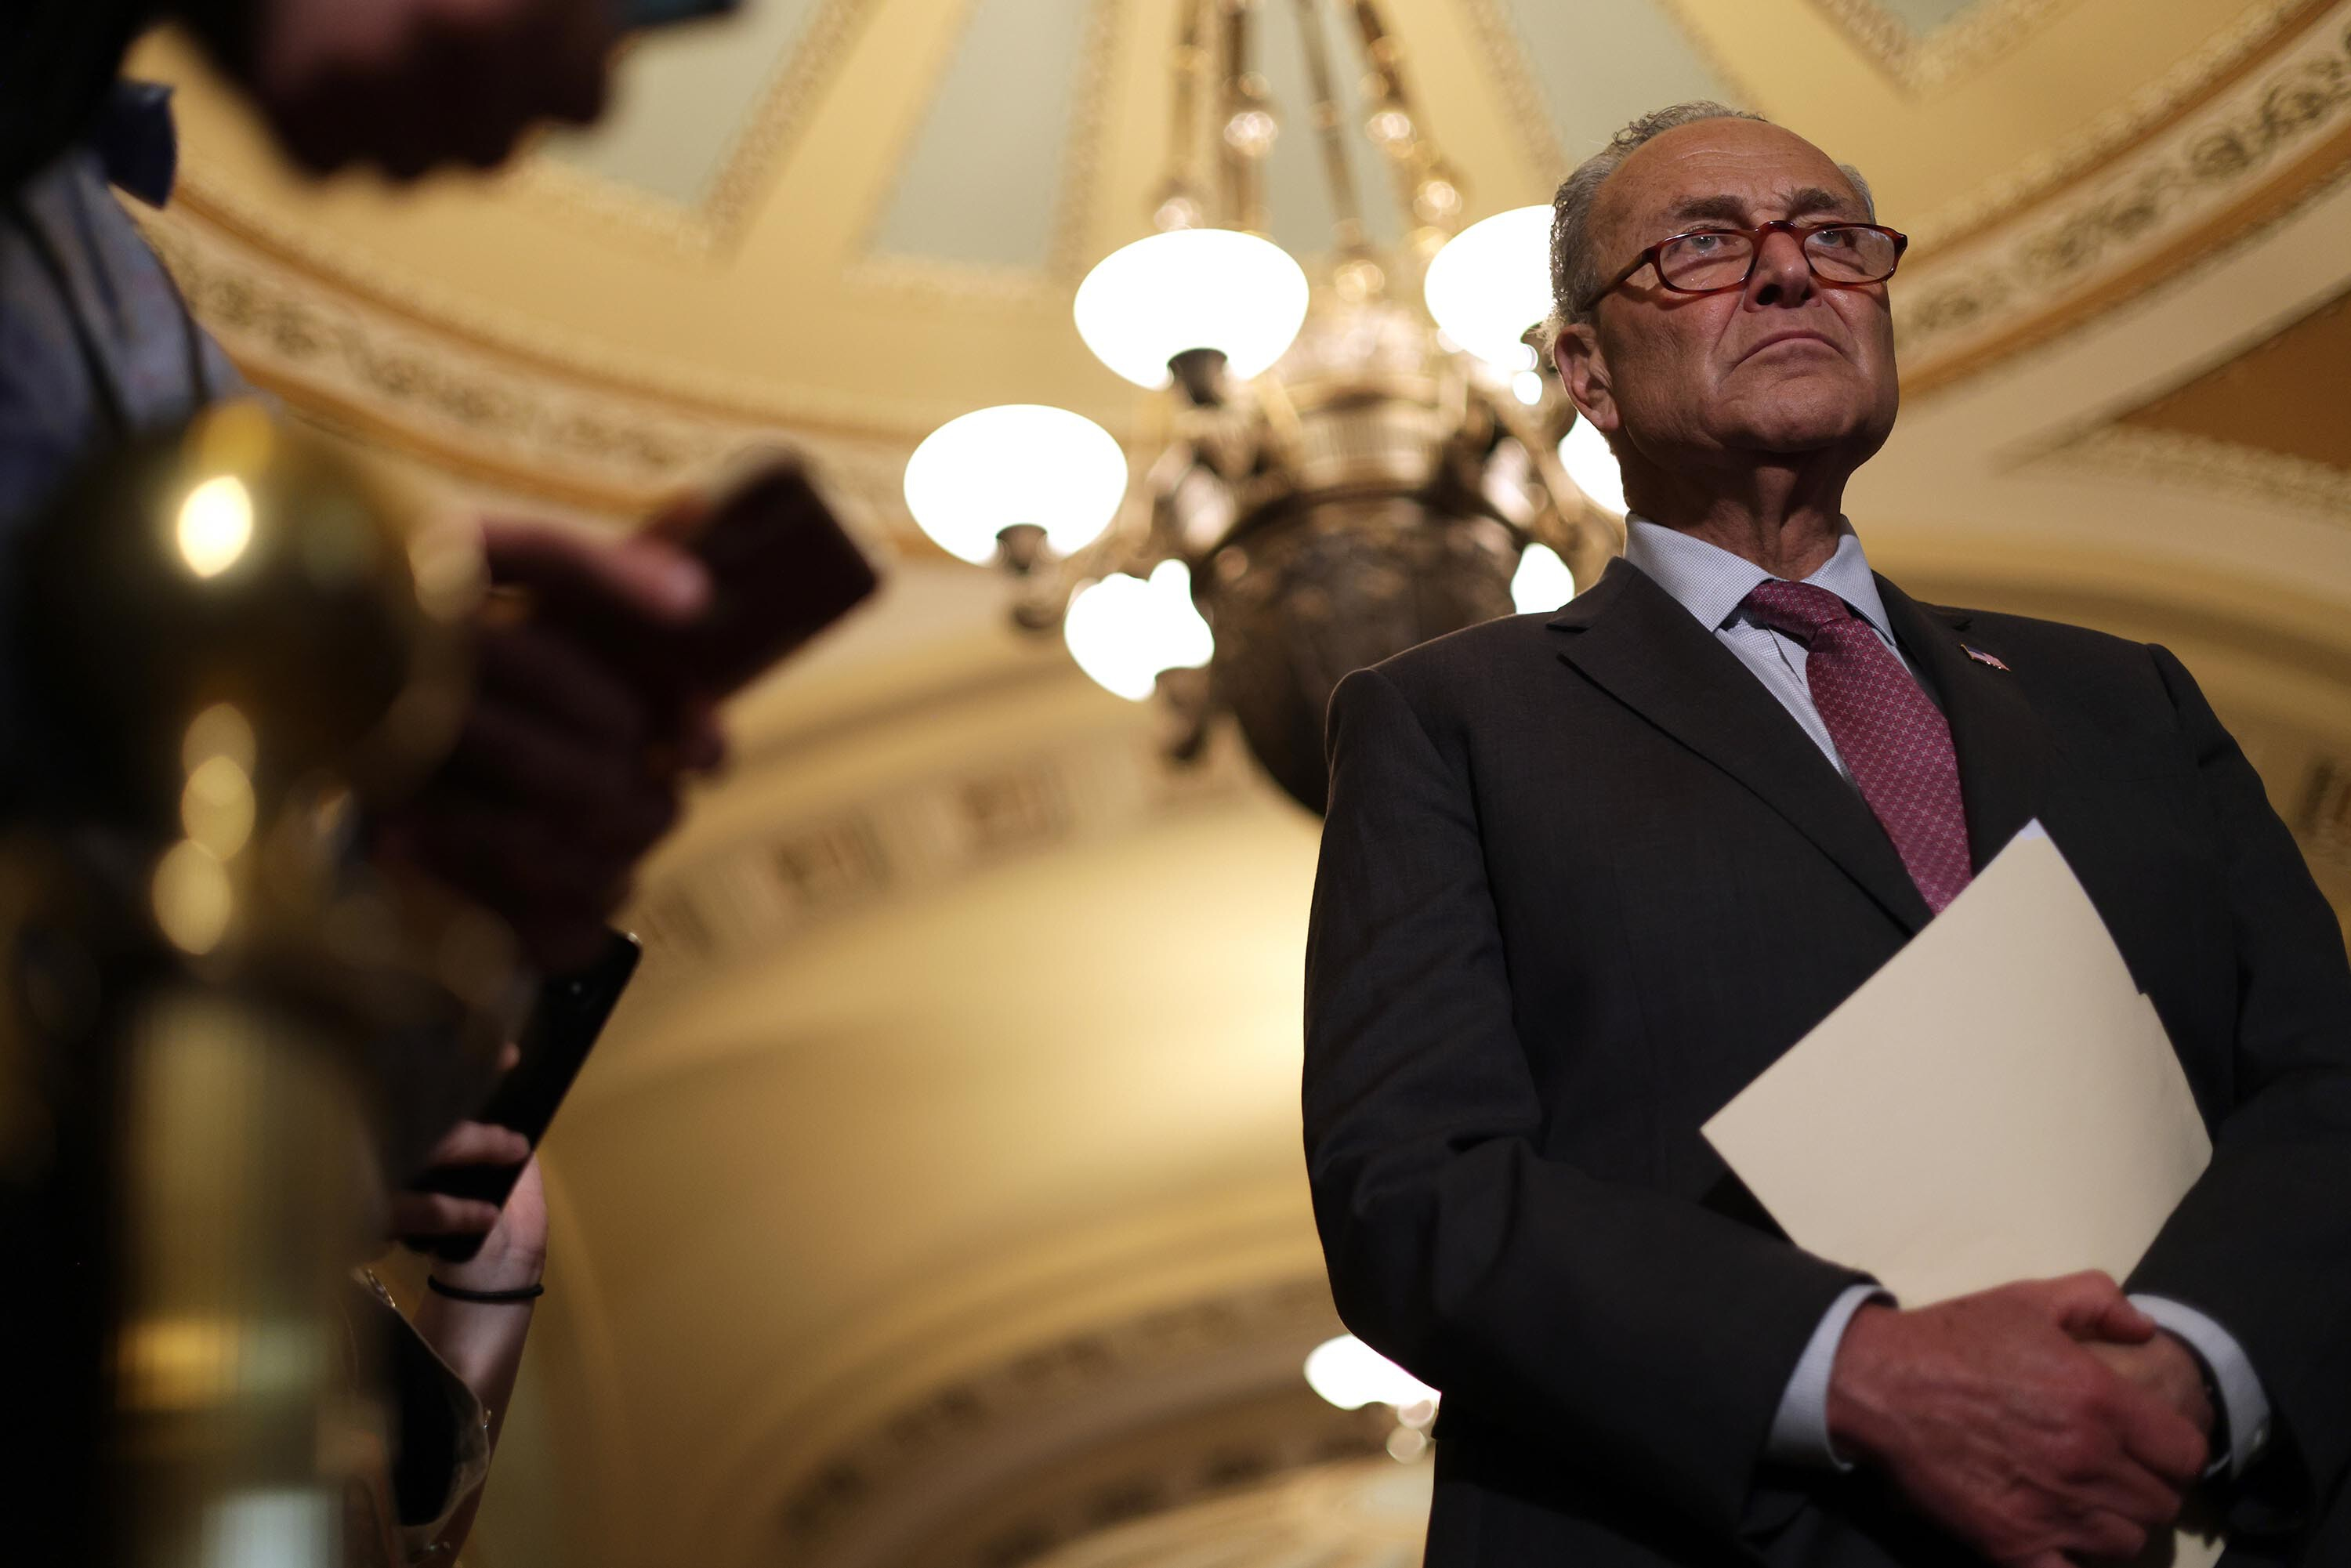 Democrats want to expand Medicare benefits through spending bill